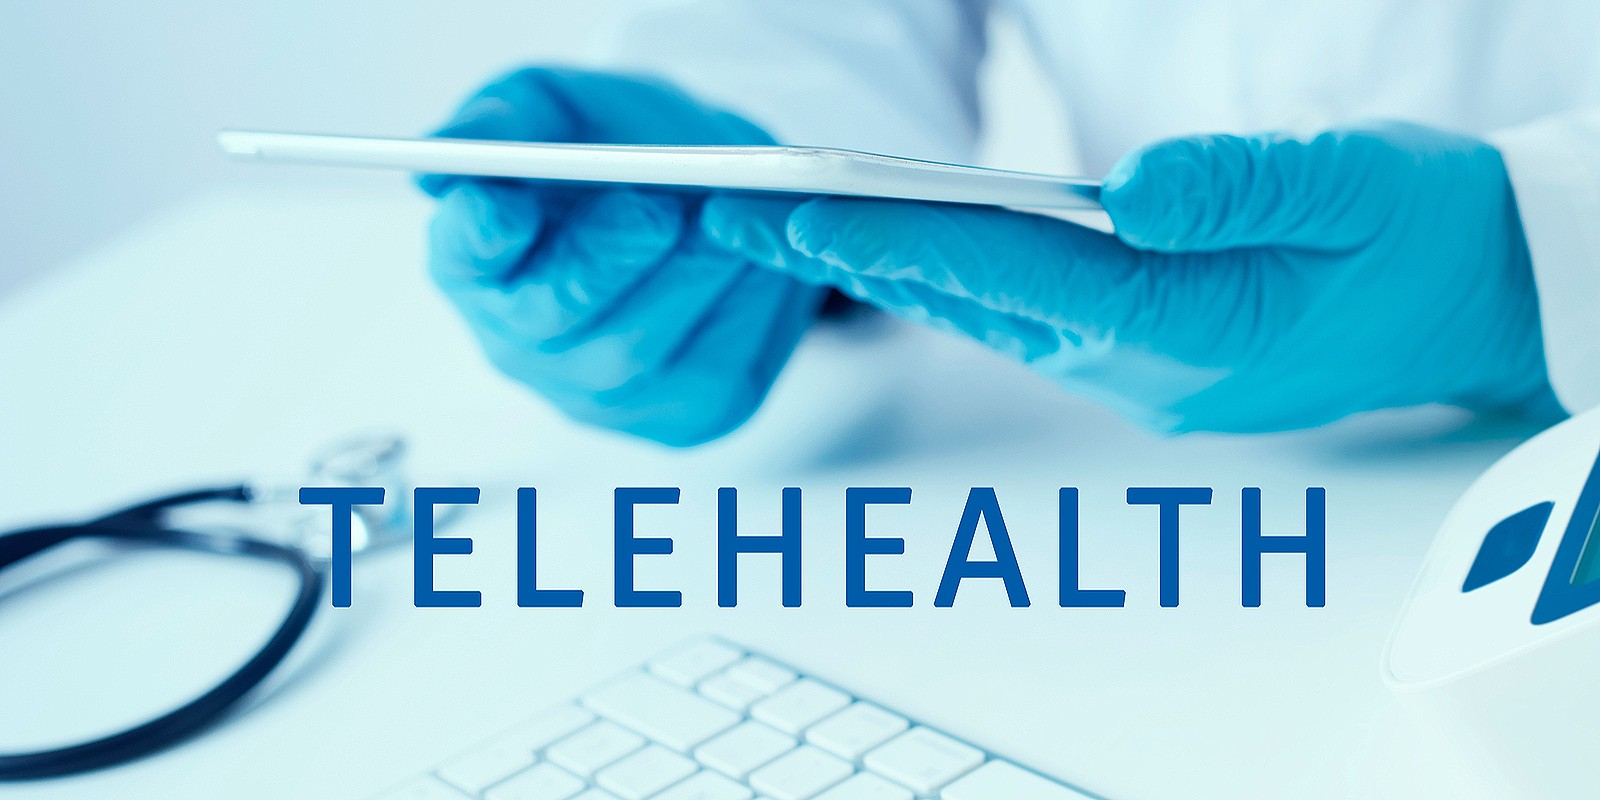 A Telehealth healthcare provider virtually offering services to patients through video chat